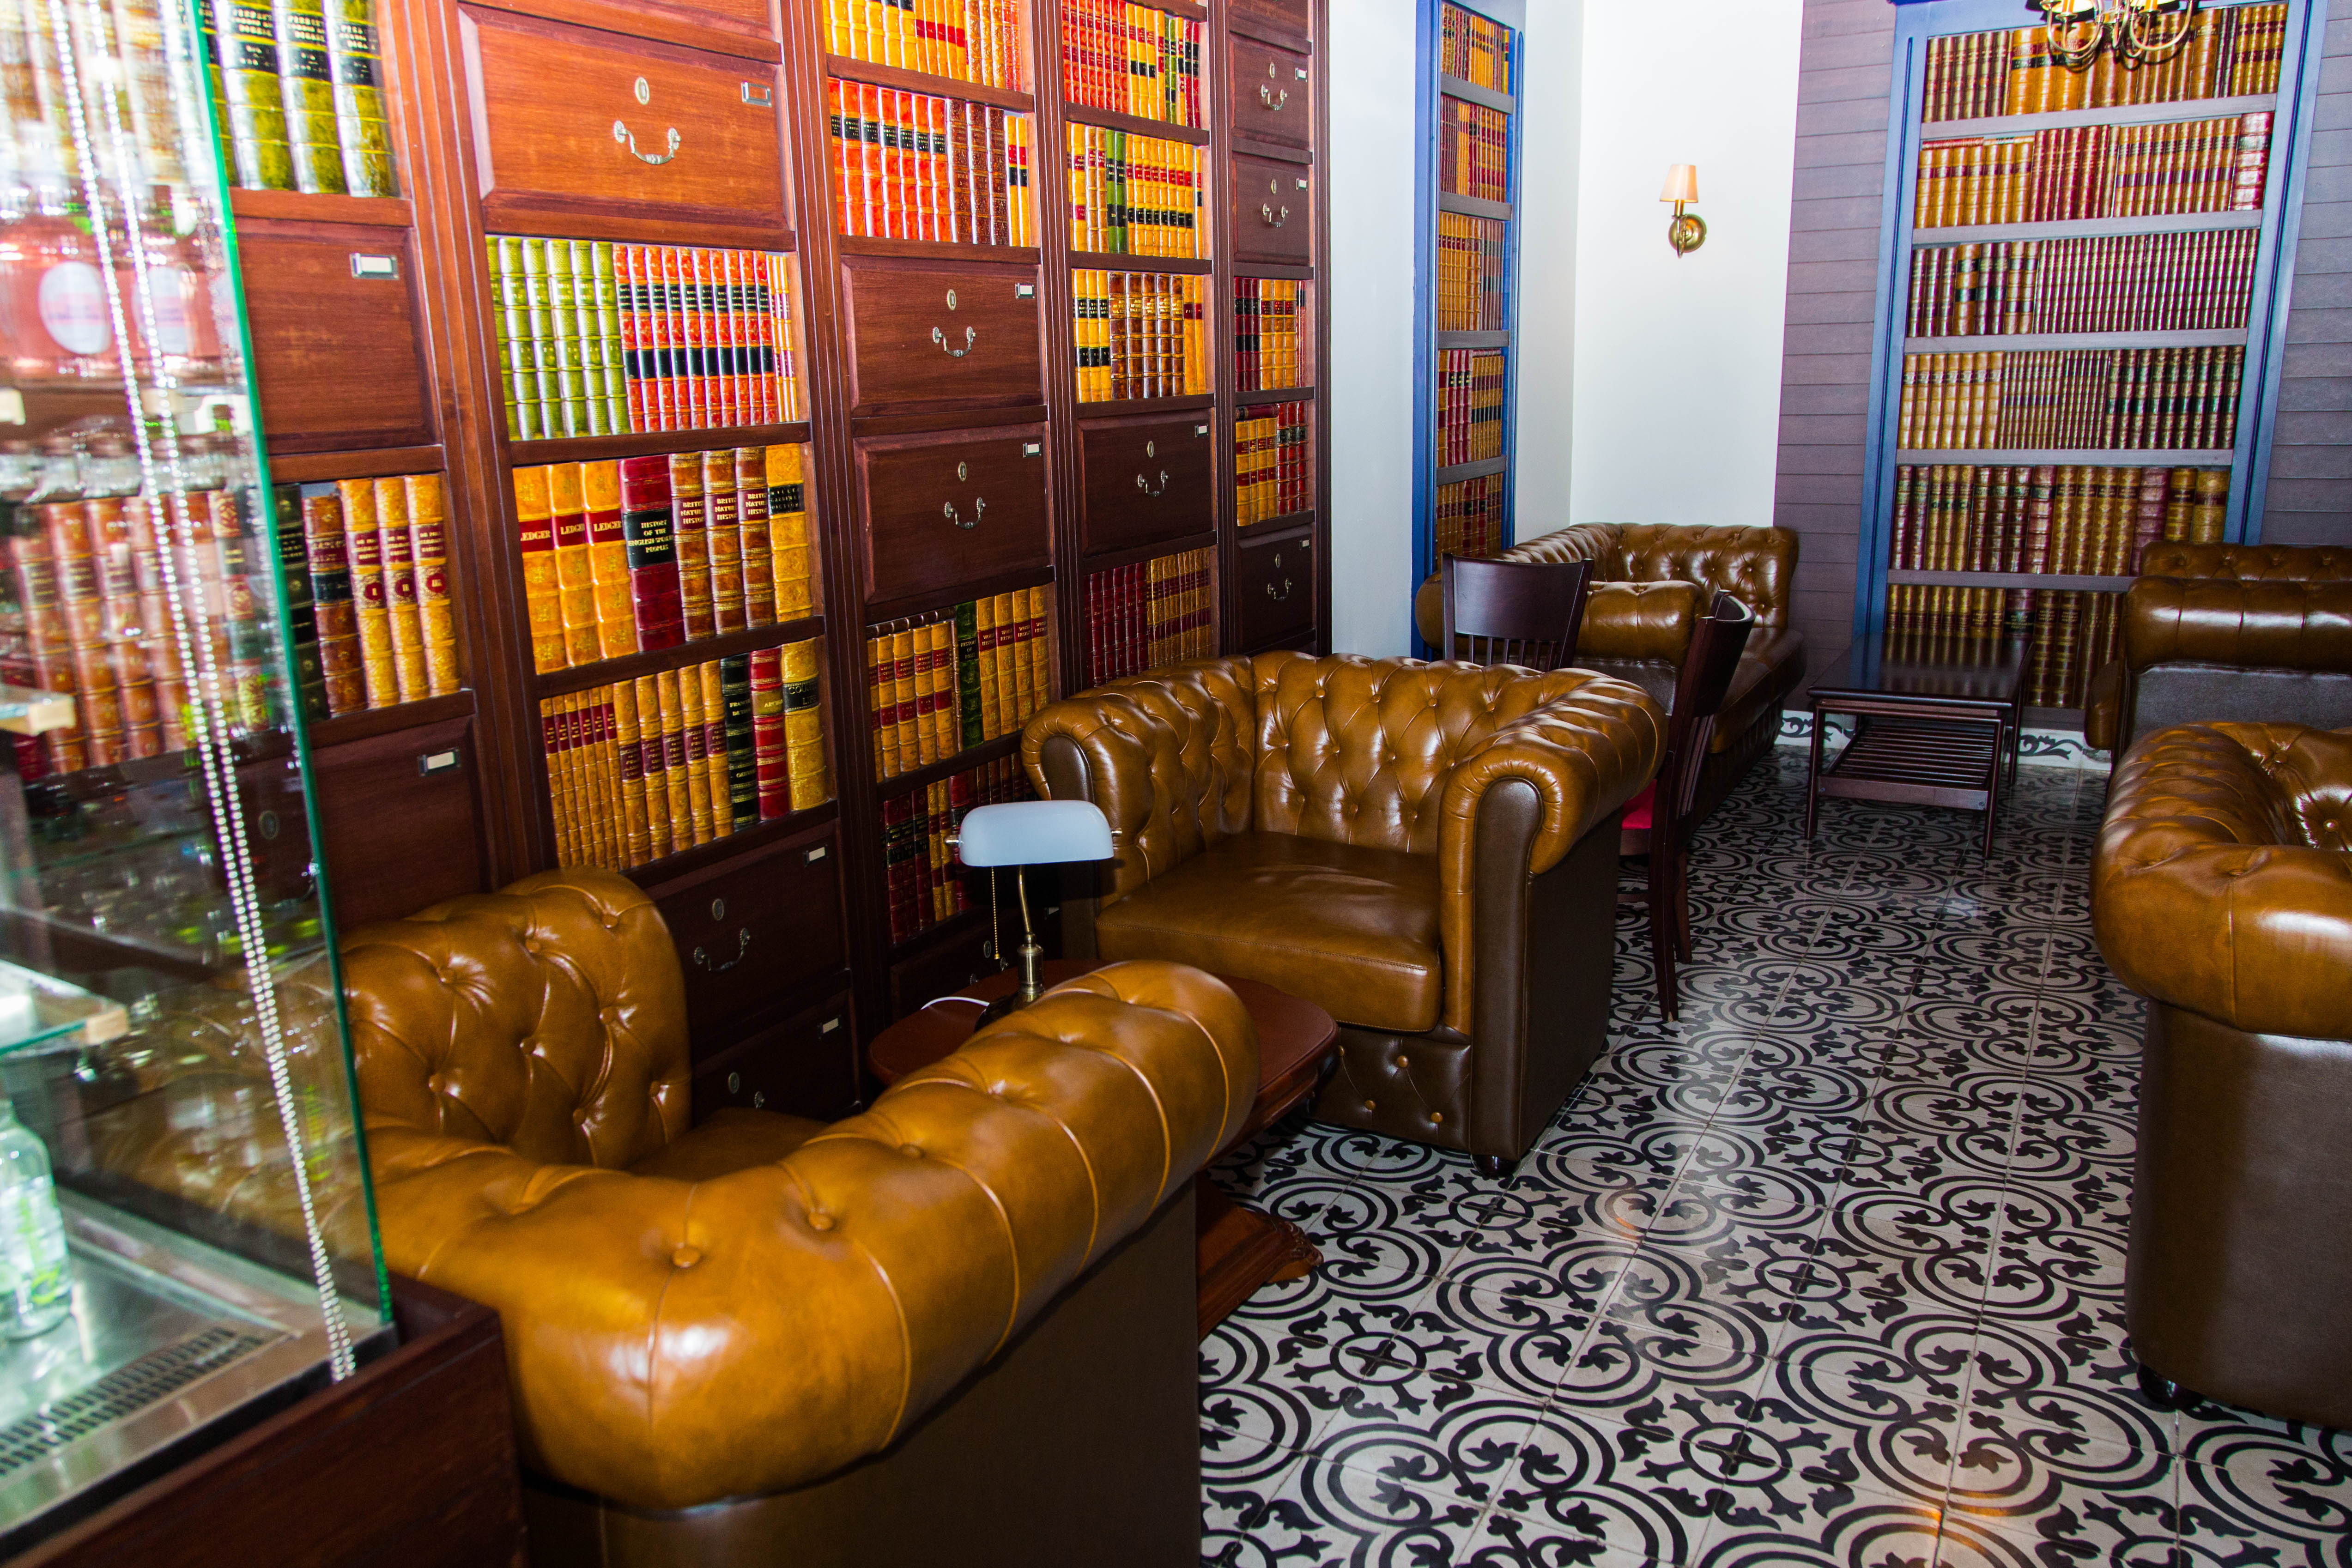 Visit Biblioteaca: A New Restaurant and Cafe in Muscat